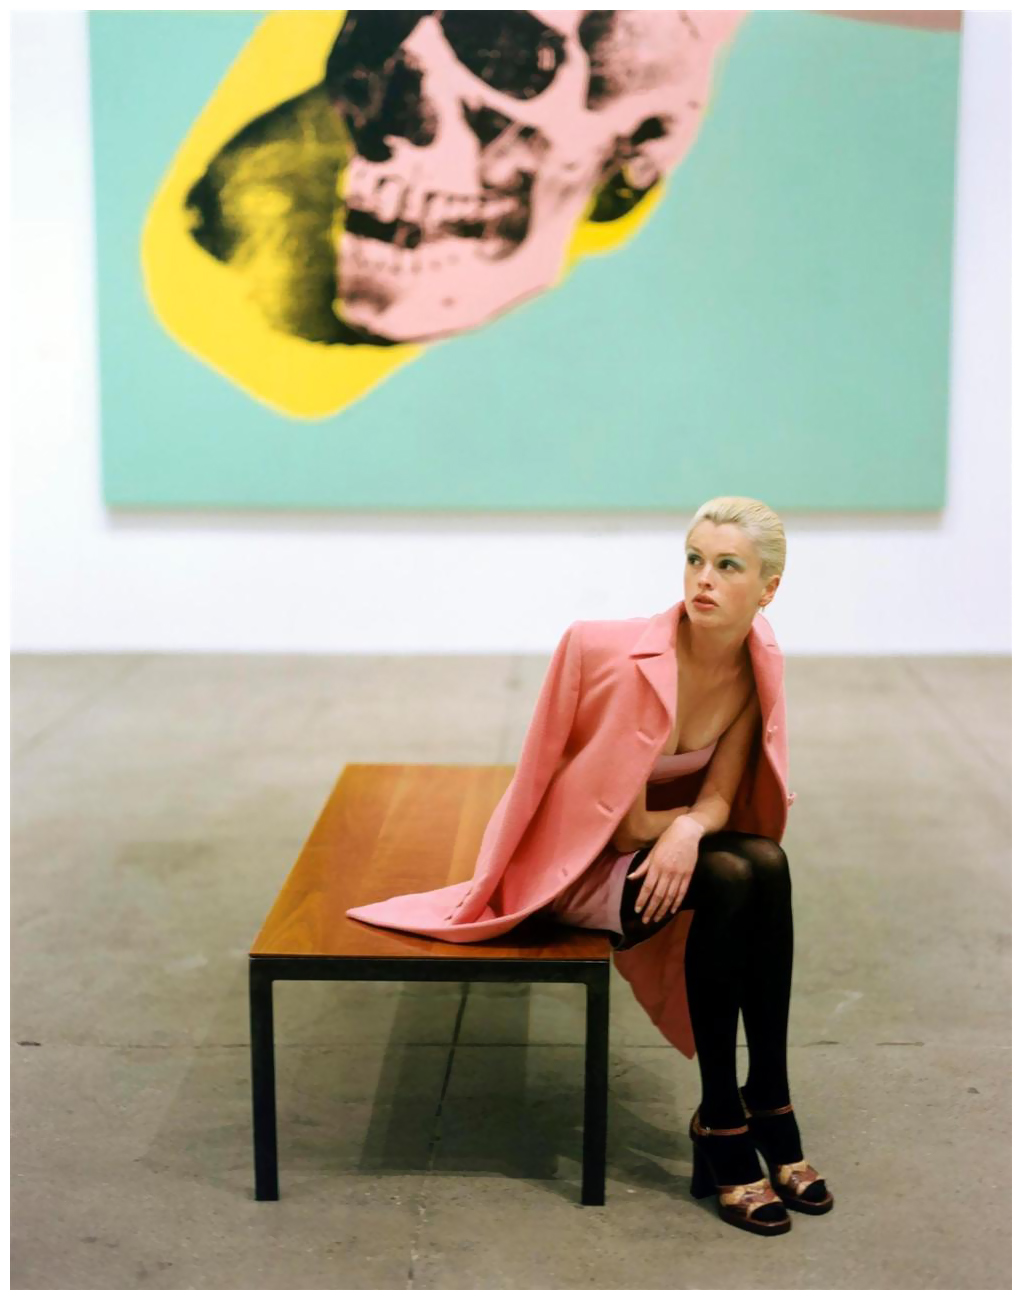 kylie-bax-vogue-italia-sep-1996-andy-warhol_s-museum-by-steven-meisel-gh